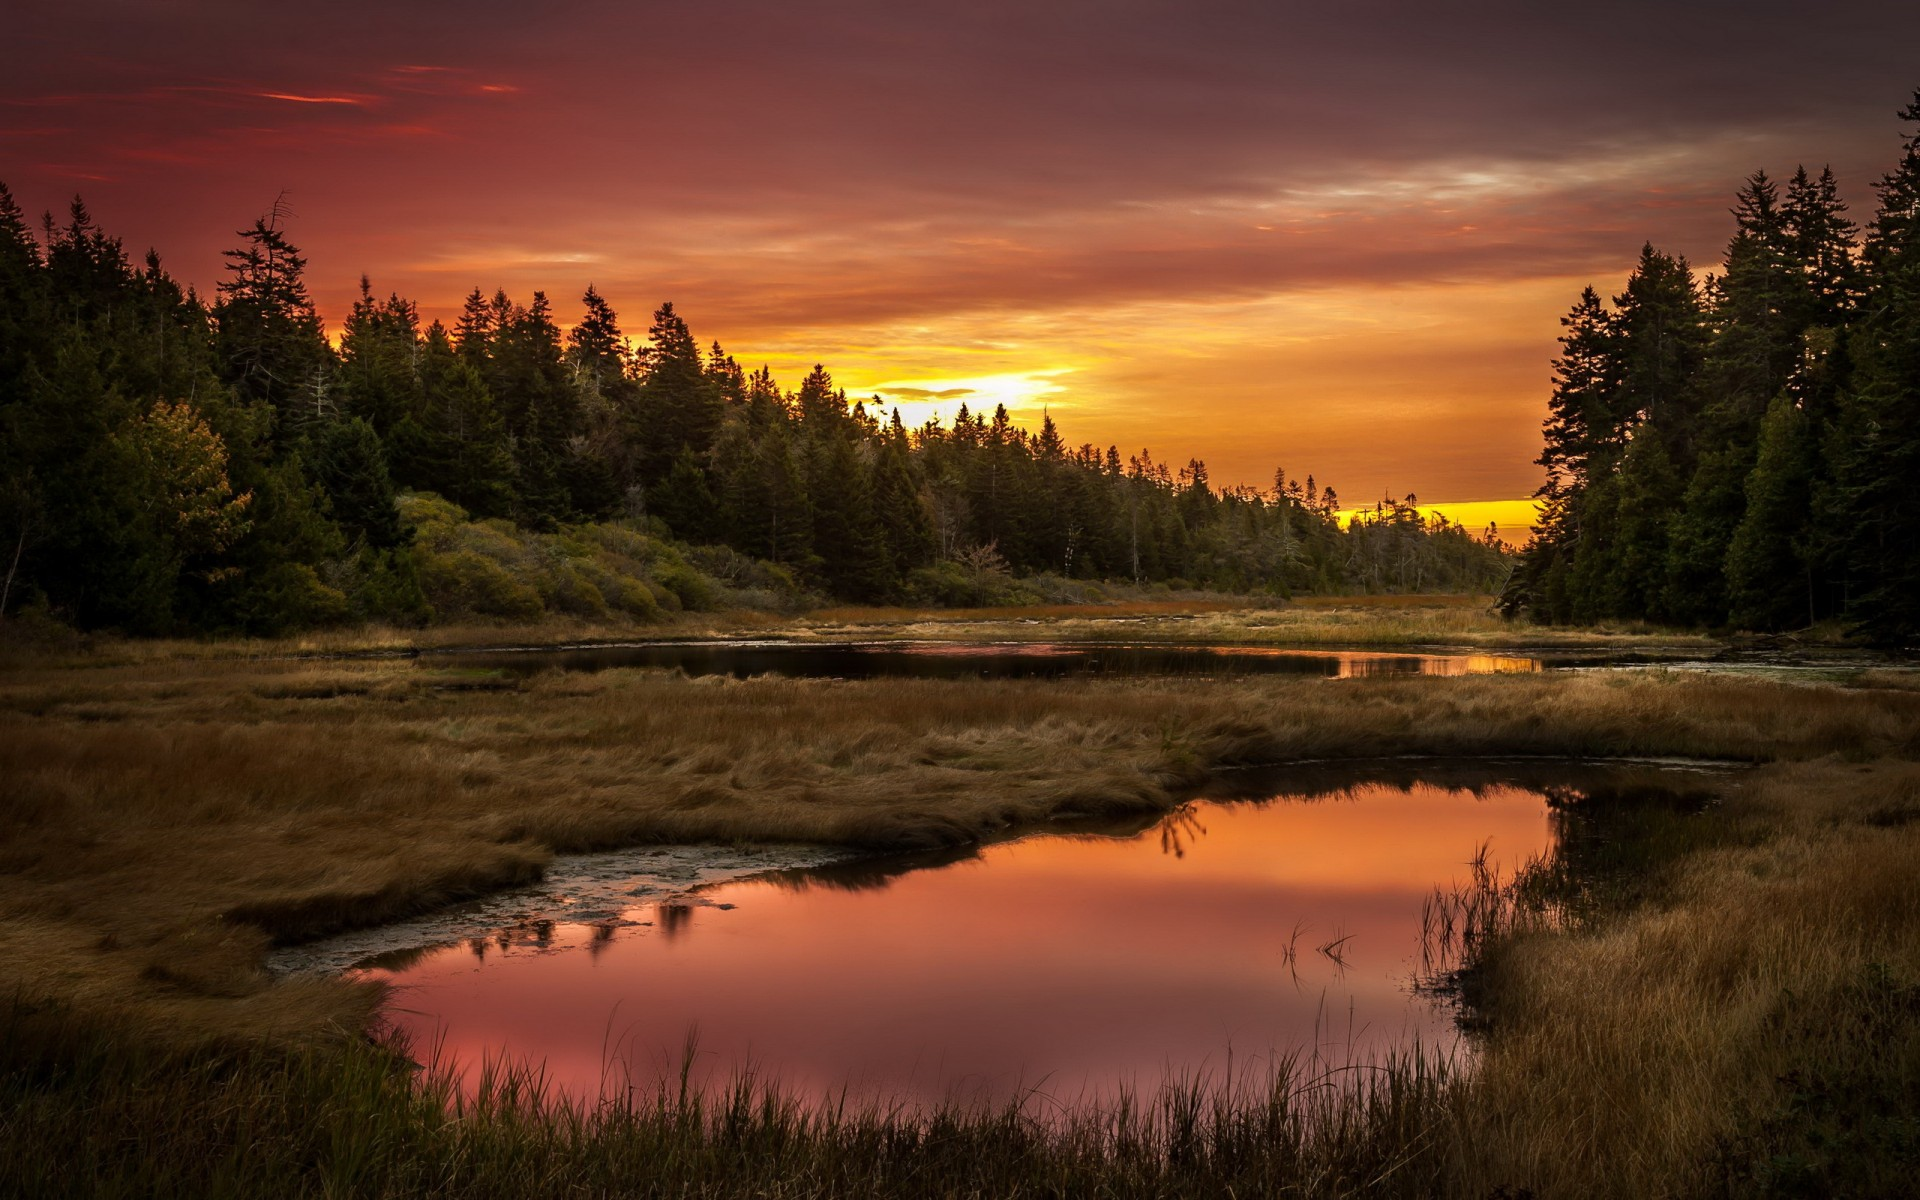 Sunset Lake Forest Landscape Reflection Wallpaper